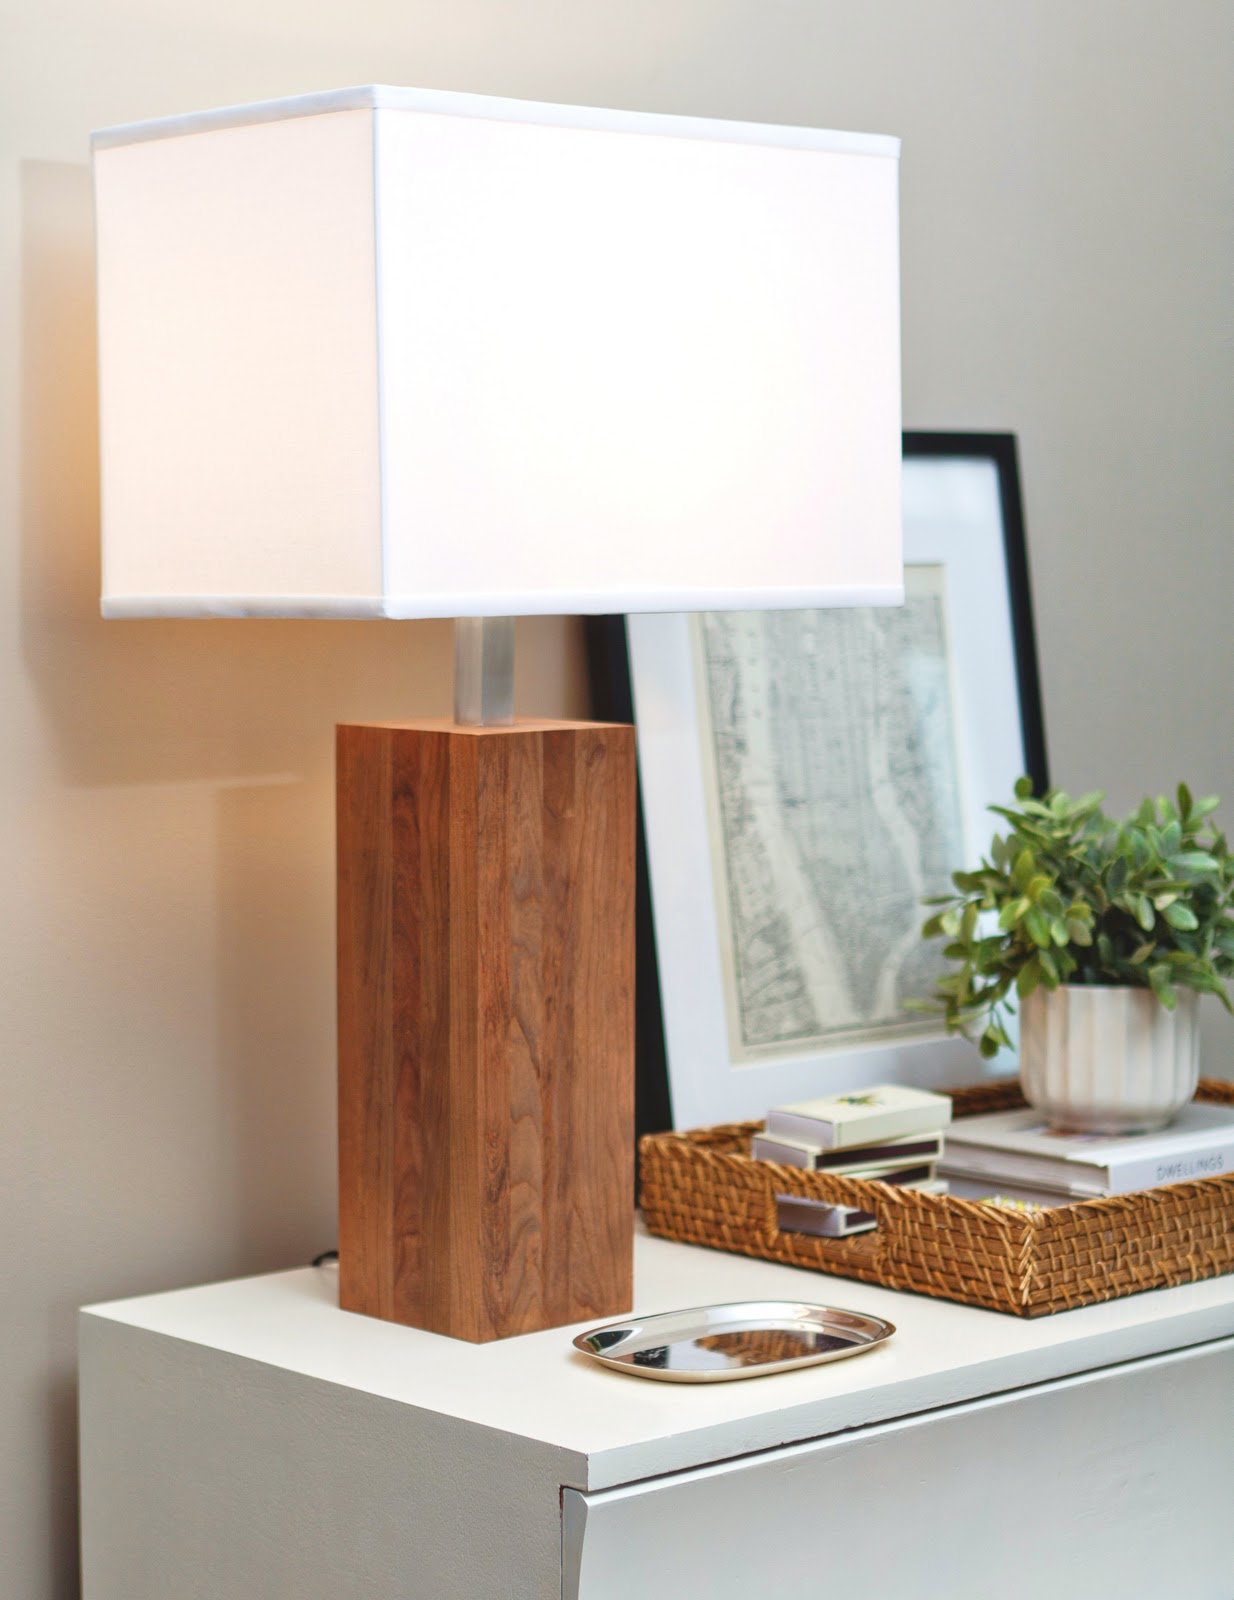 High street market winston wood table lamp todays sneak peek is our winston wood table lamp its one of our favorites inspired by mid century danish design we created this table lamp specifically geotapseo Choice Image